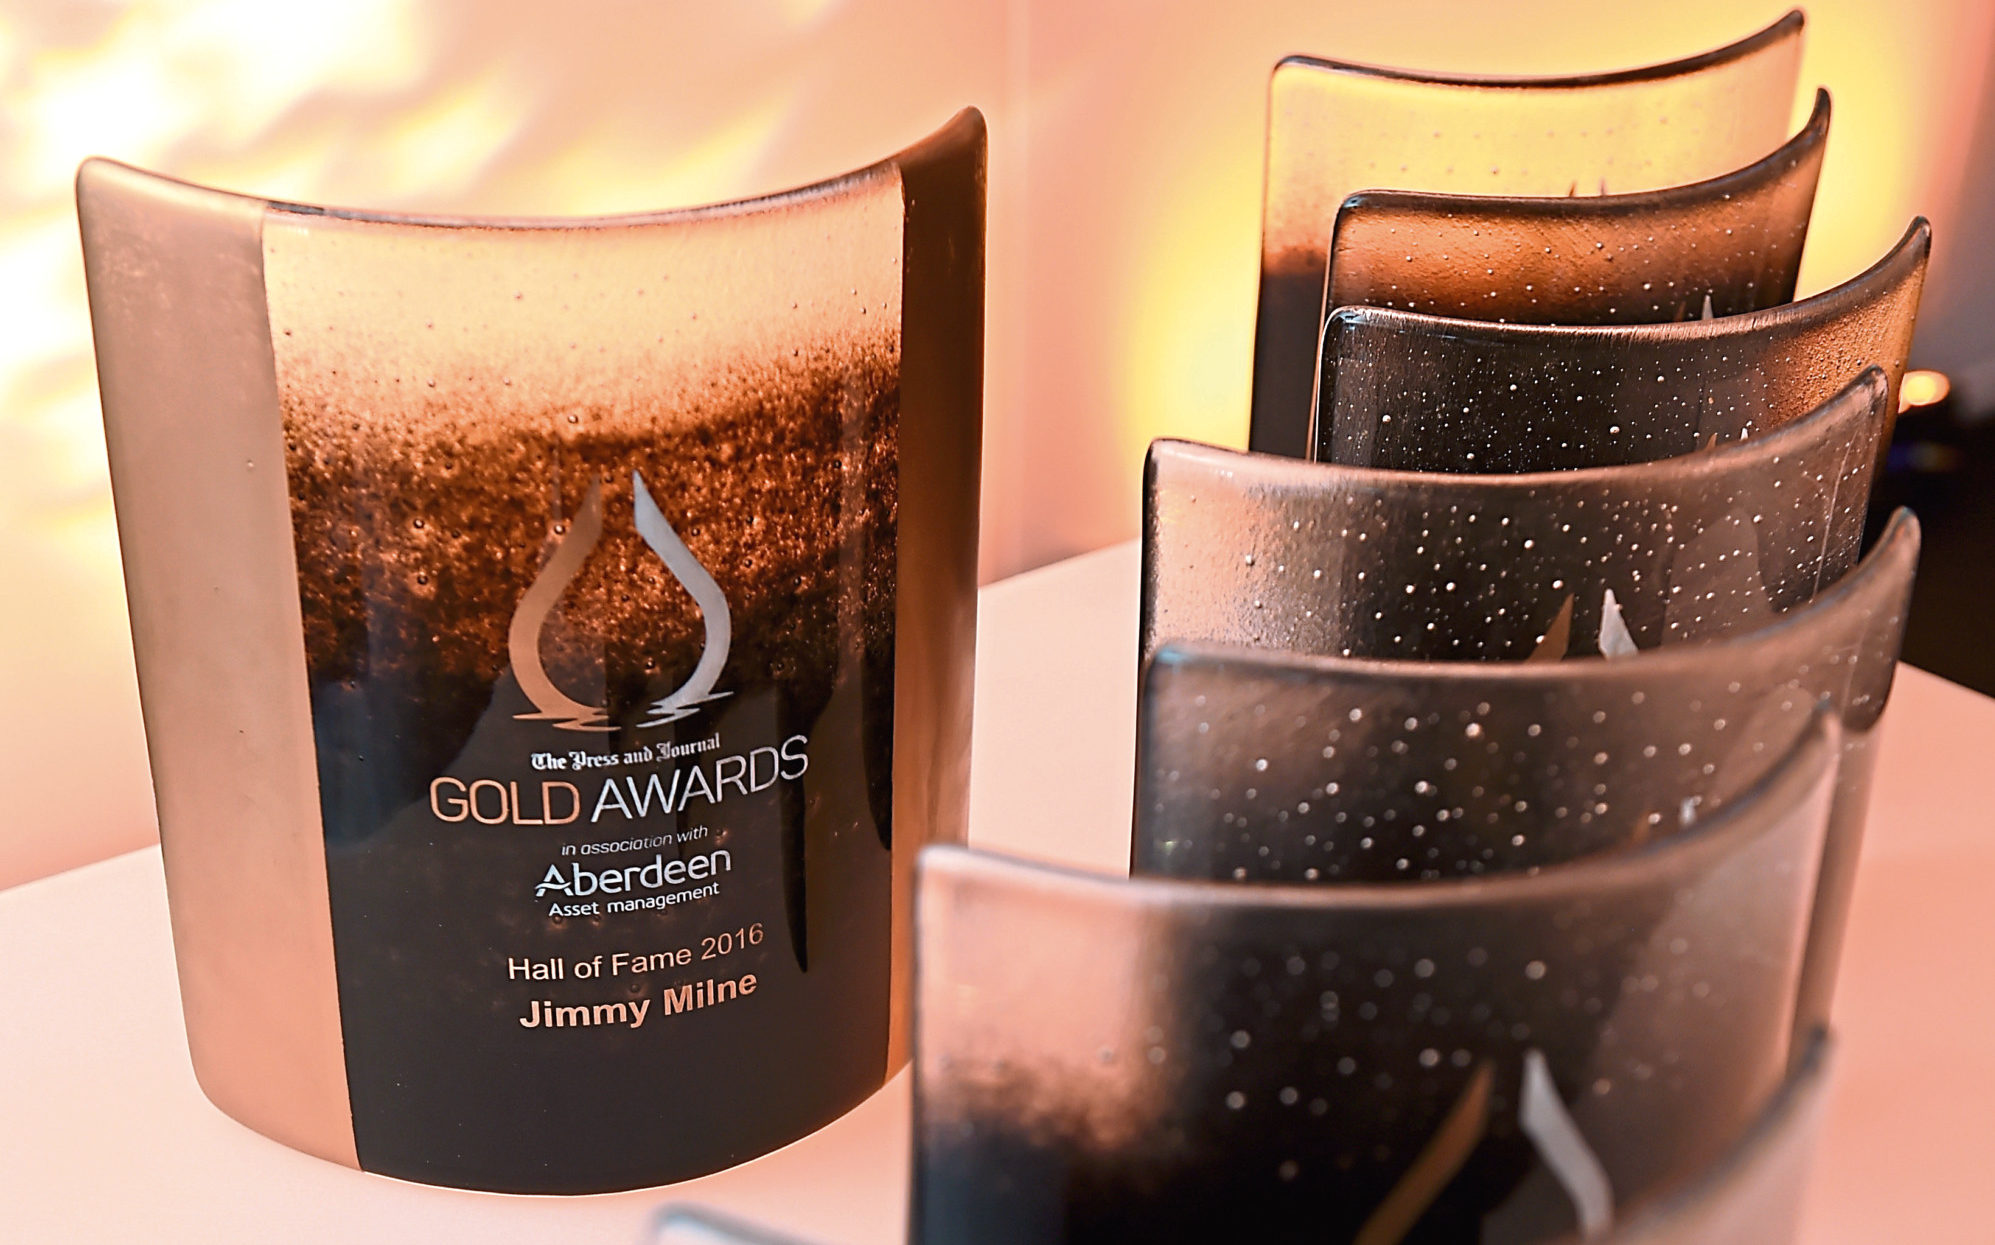 Nominations can be made online at pandjgoldawards.com or via an email to Laura Adam at laadam@dctmedia.co.uk